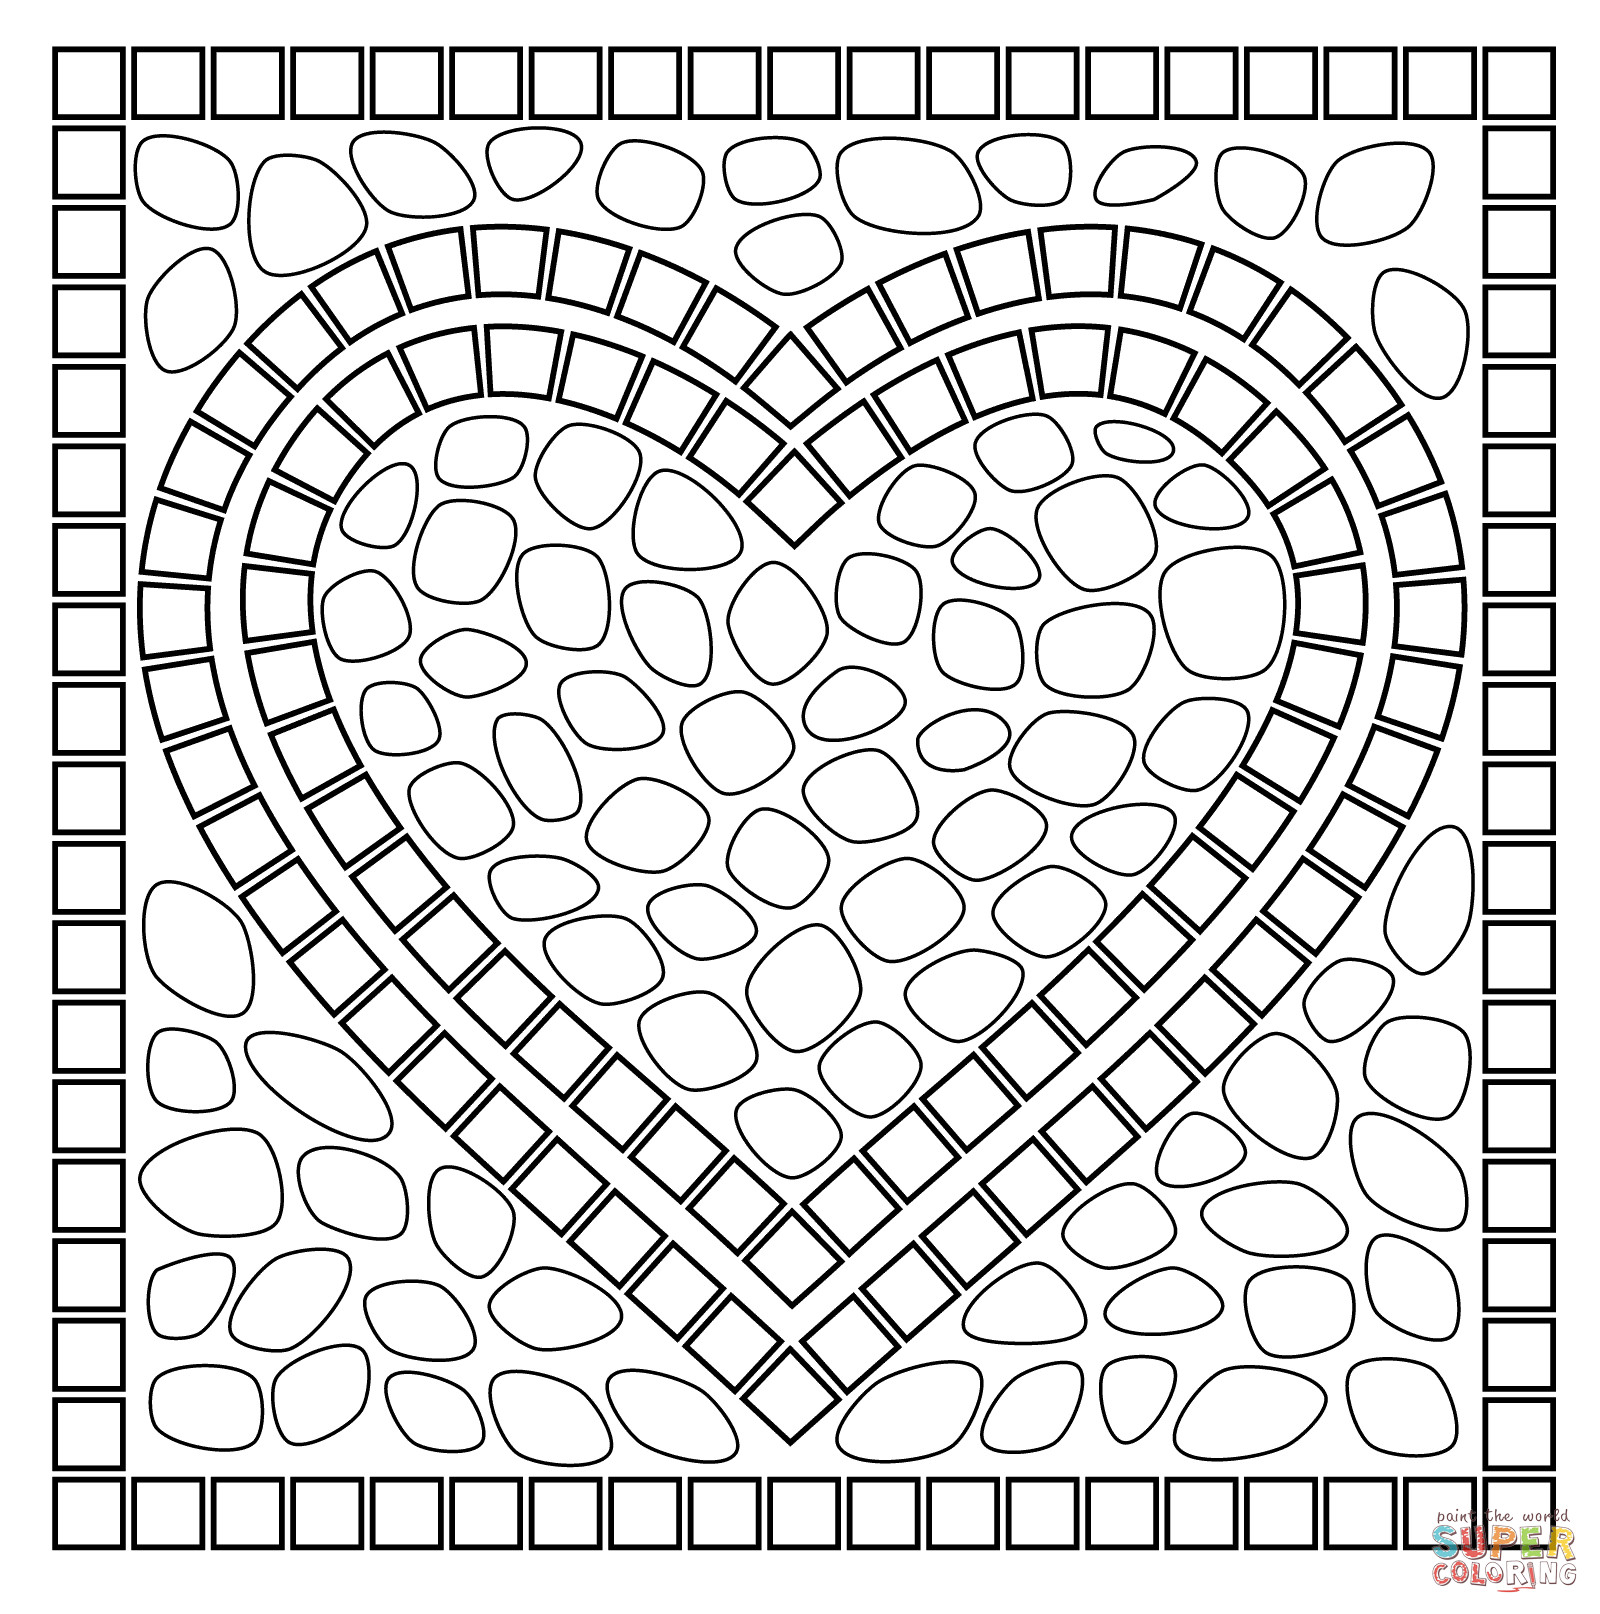 Best ideas about Mosaic Printable Coloring Pages . Save or Pin Mosaic Patterns Coloring Pages Coloring Home Now.